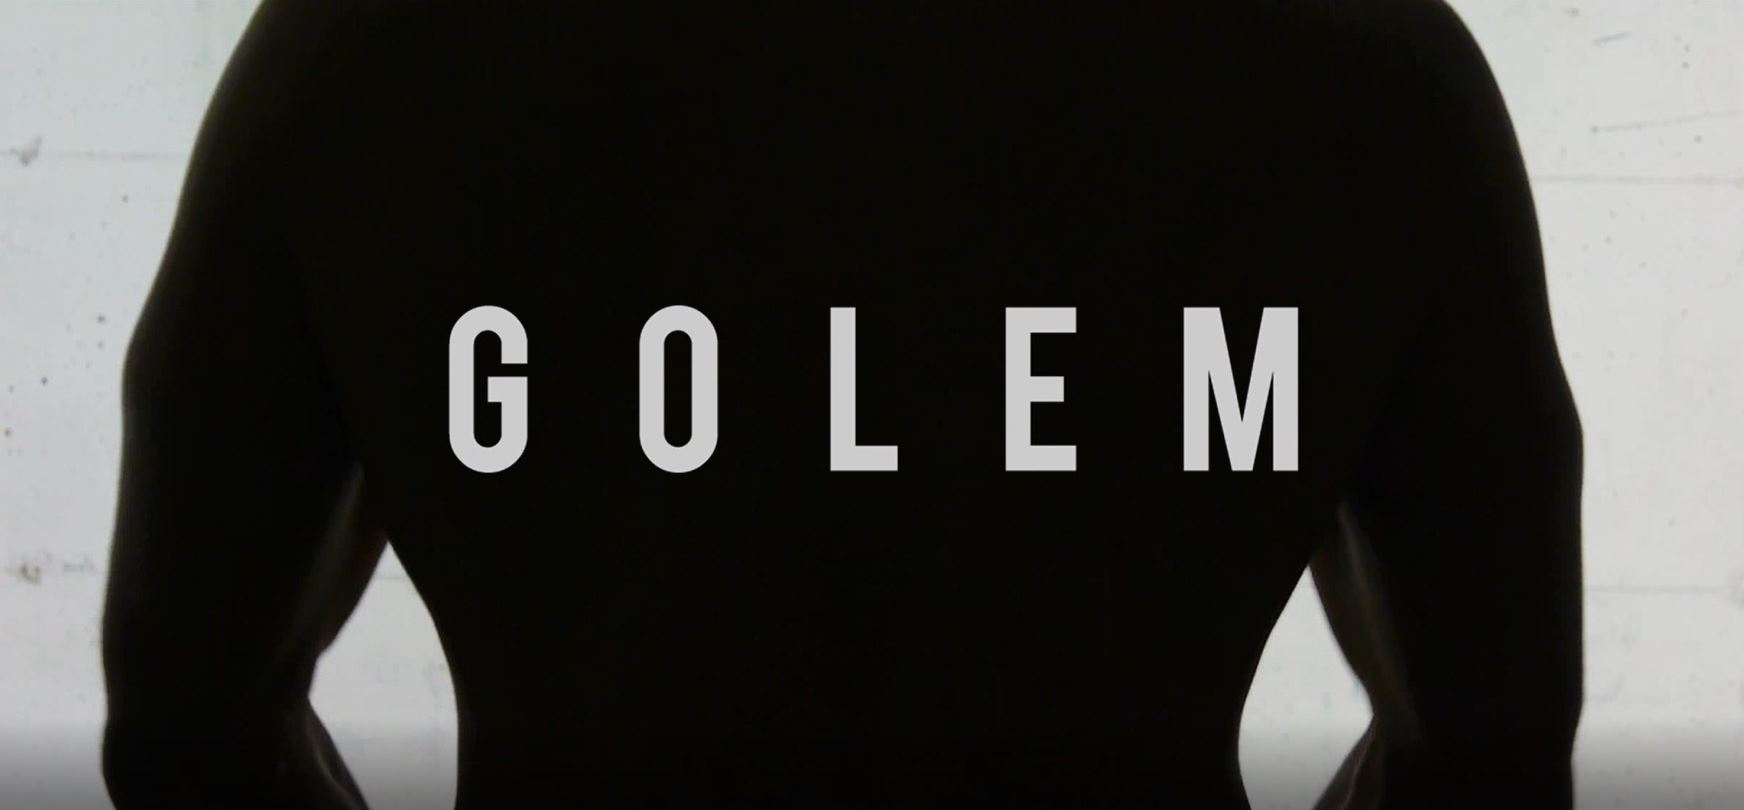 Documentary video of the Golem sculpture